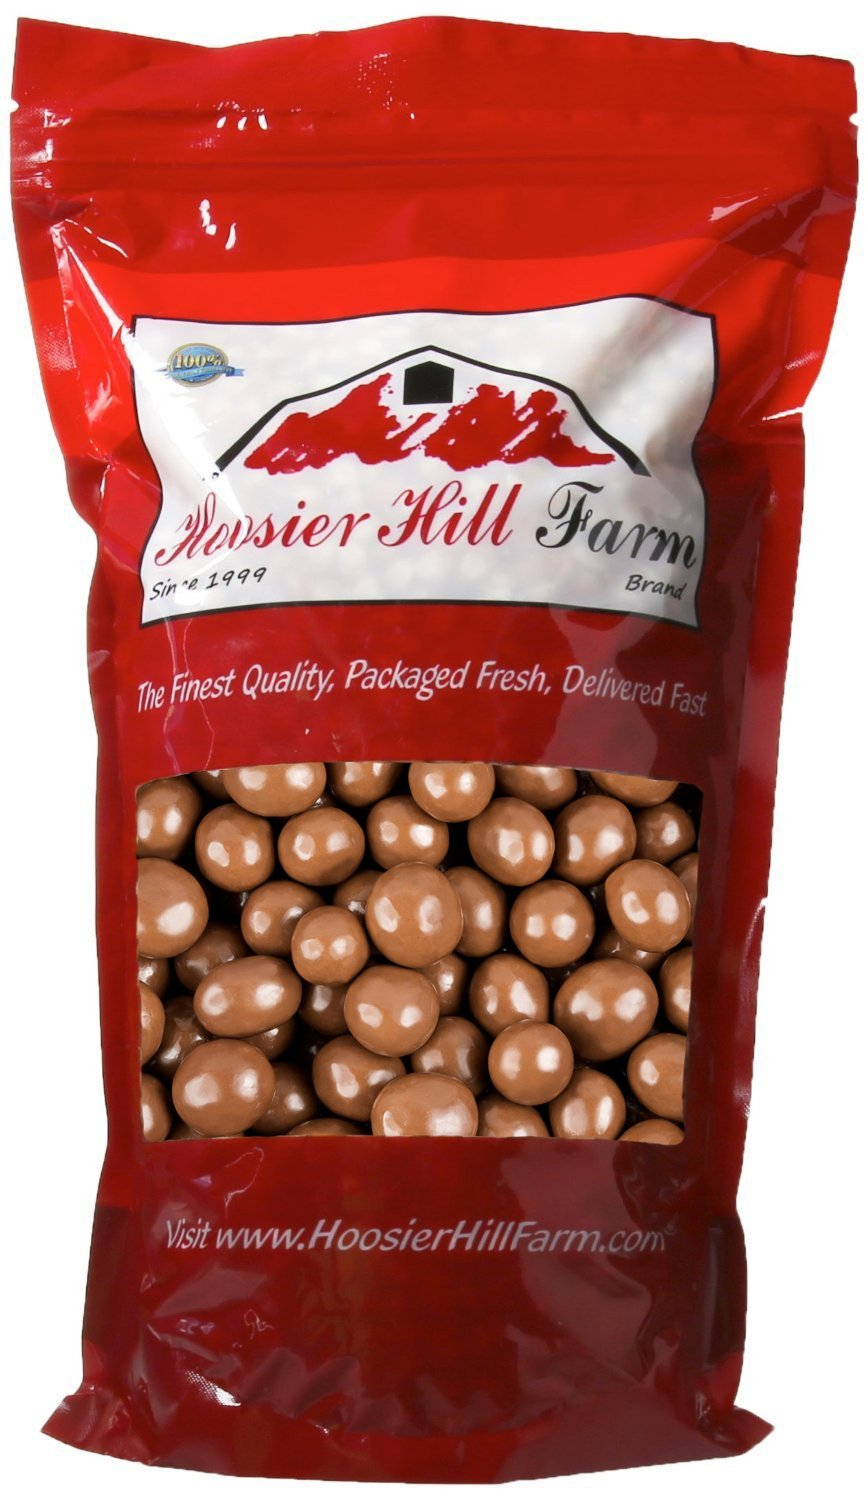 Gourmet Milk Chocolate covered Espresso Beans, Hoosier Hill Farm (2 lb Bag)